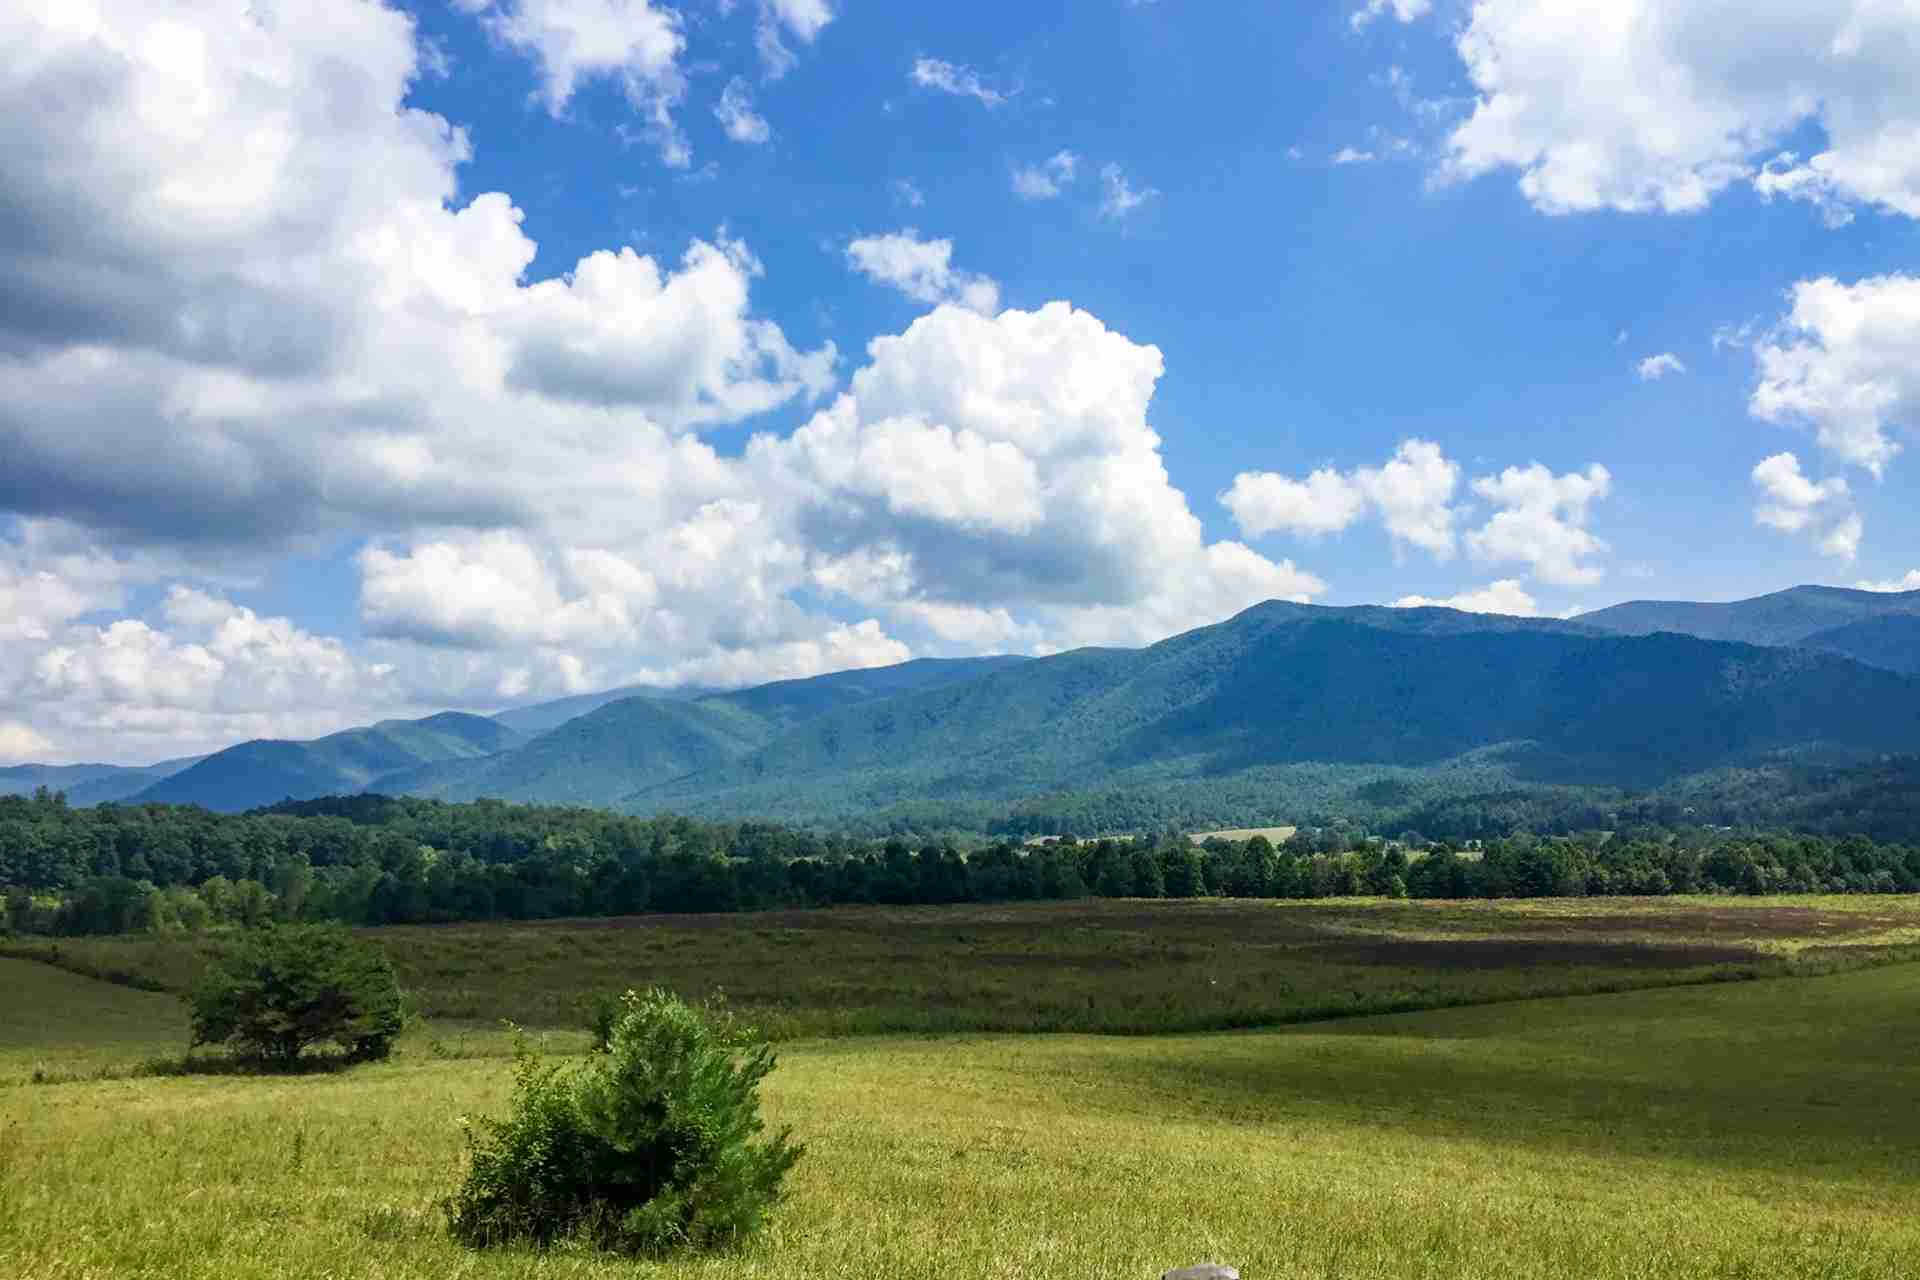 Cades Cove Loop Road (Photo by Caitlin Riddell/The Points Guy)